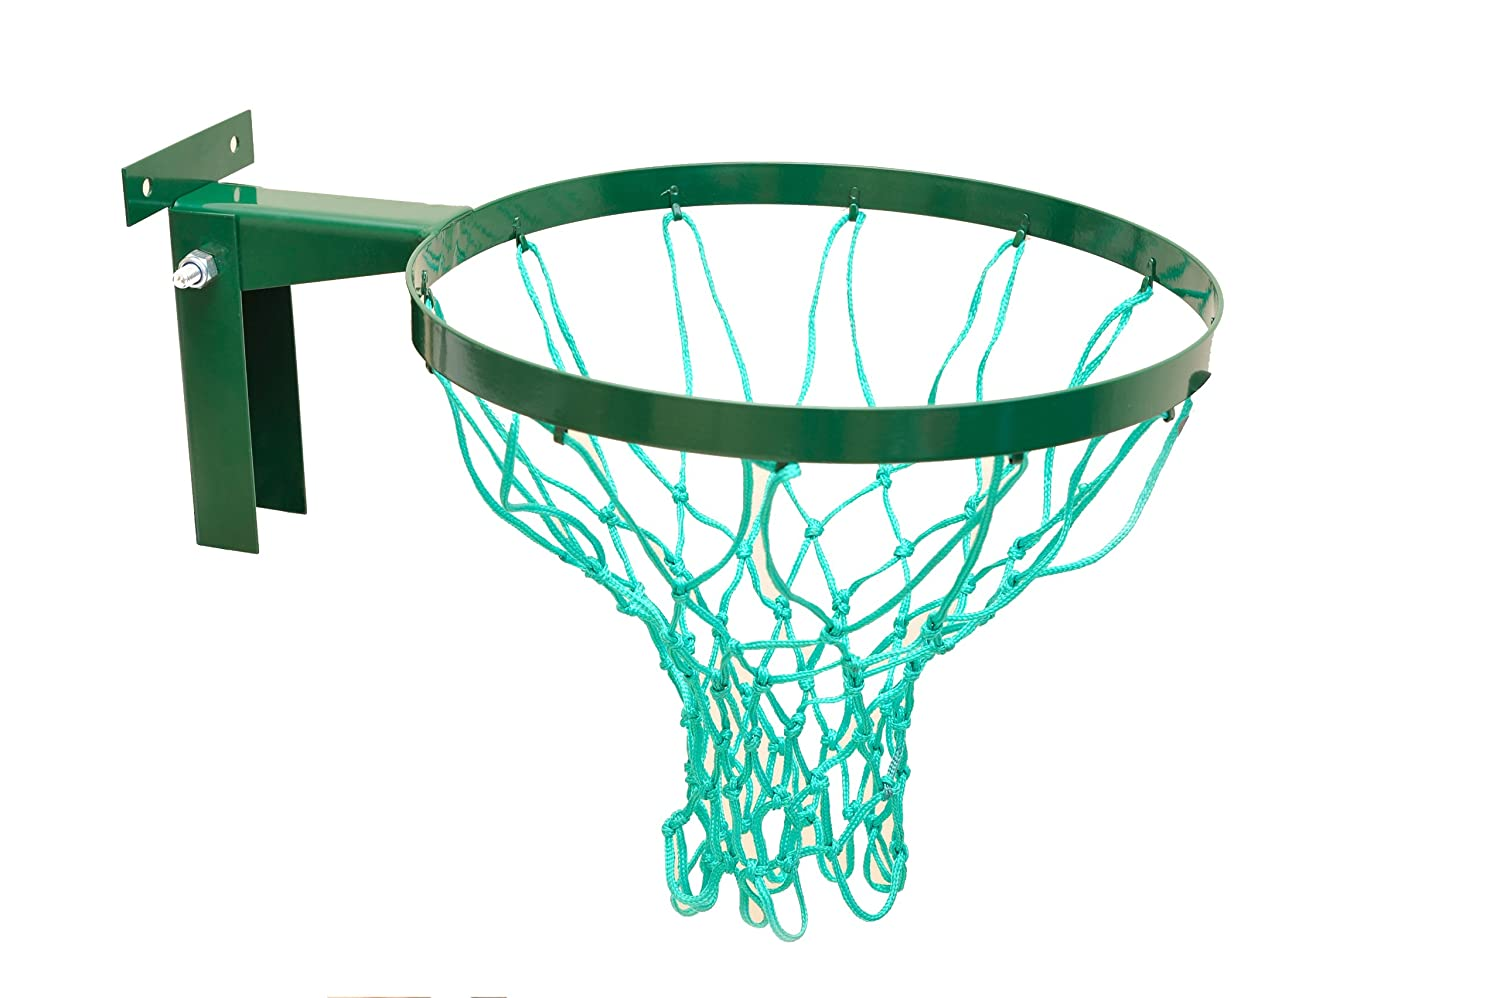 British Made Strong Netball Hoop from the Avonstar Classic Range (Robust Bracket, 2 years warranty) With top quality 3mm twine net. Avonstar Trading co. ltd.